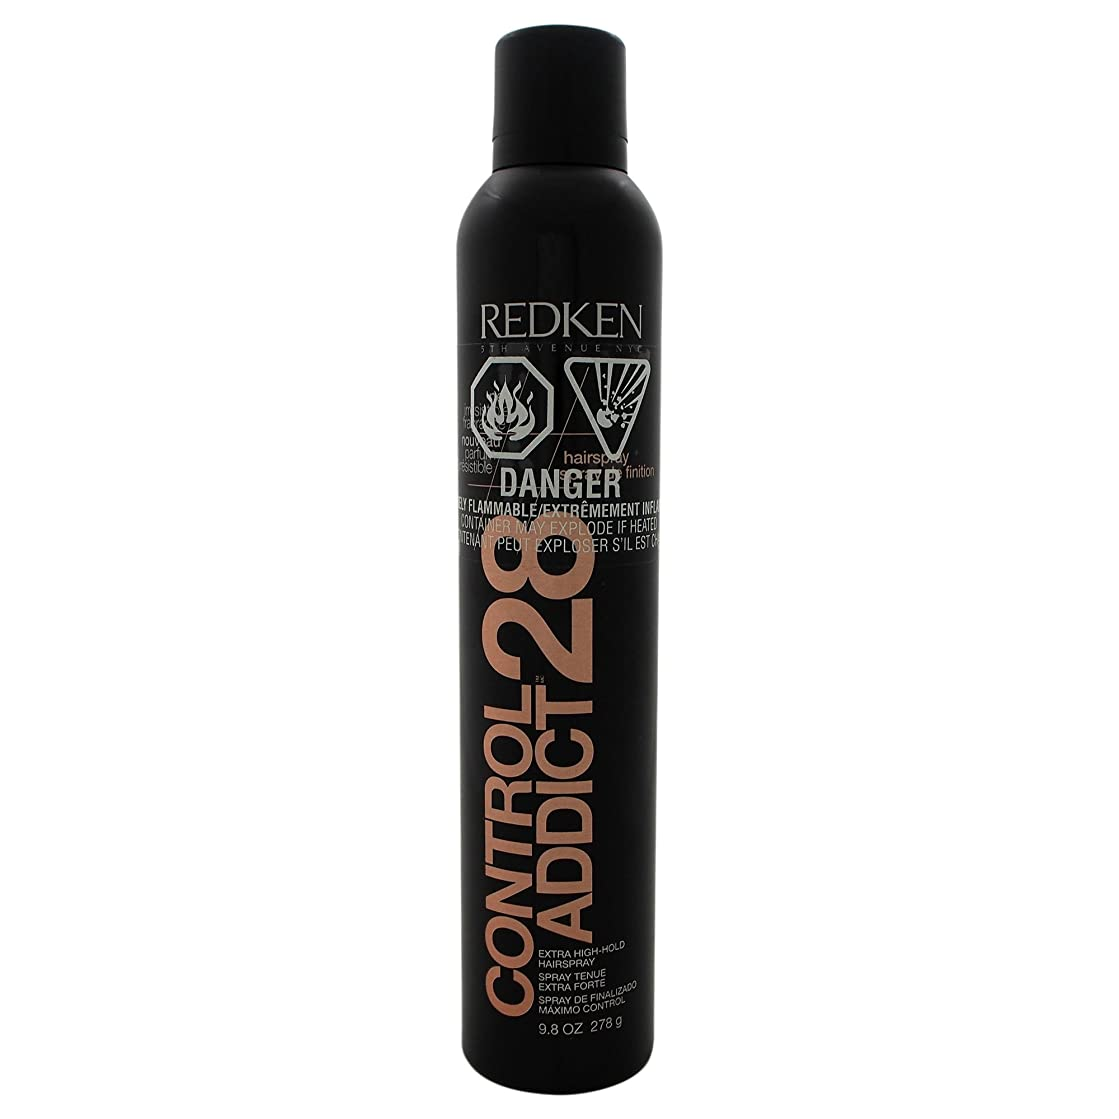 リサイクルする拍手小間by Redken CONTROL ADDICT 28 EXTRA-HIGH HOLD HAIR SPRAY 9.8 OZ(BLACK PACKAGING) by REDKEN